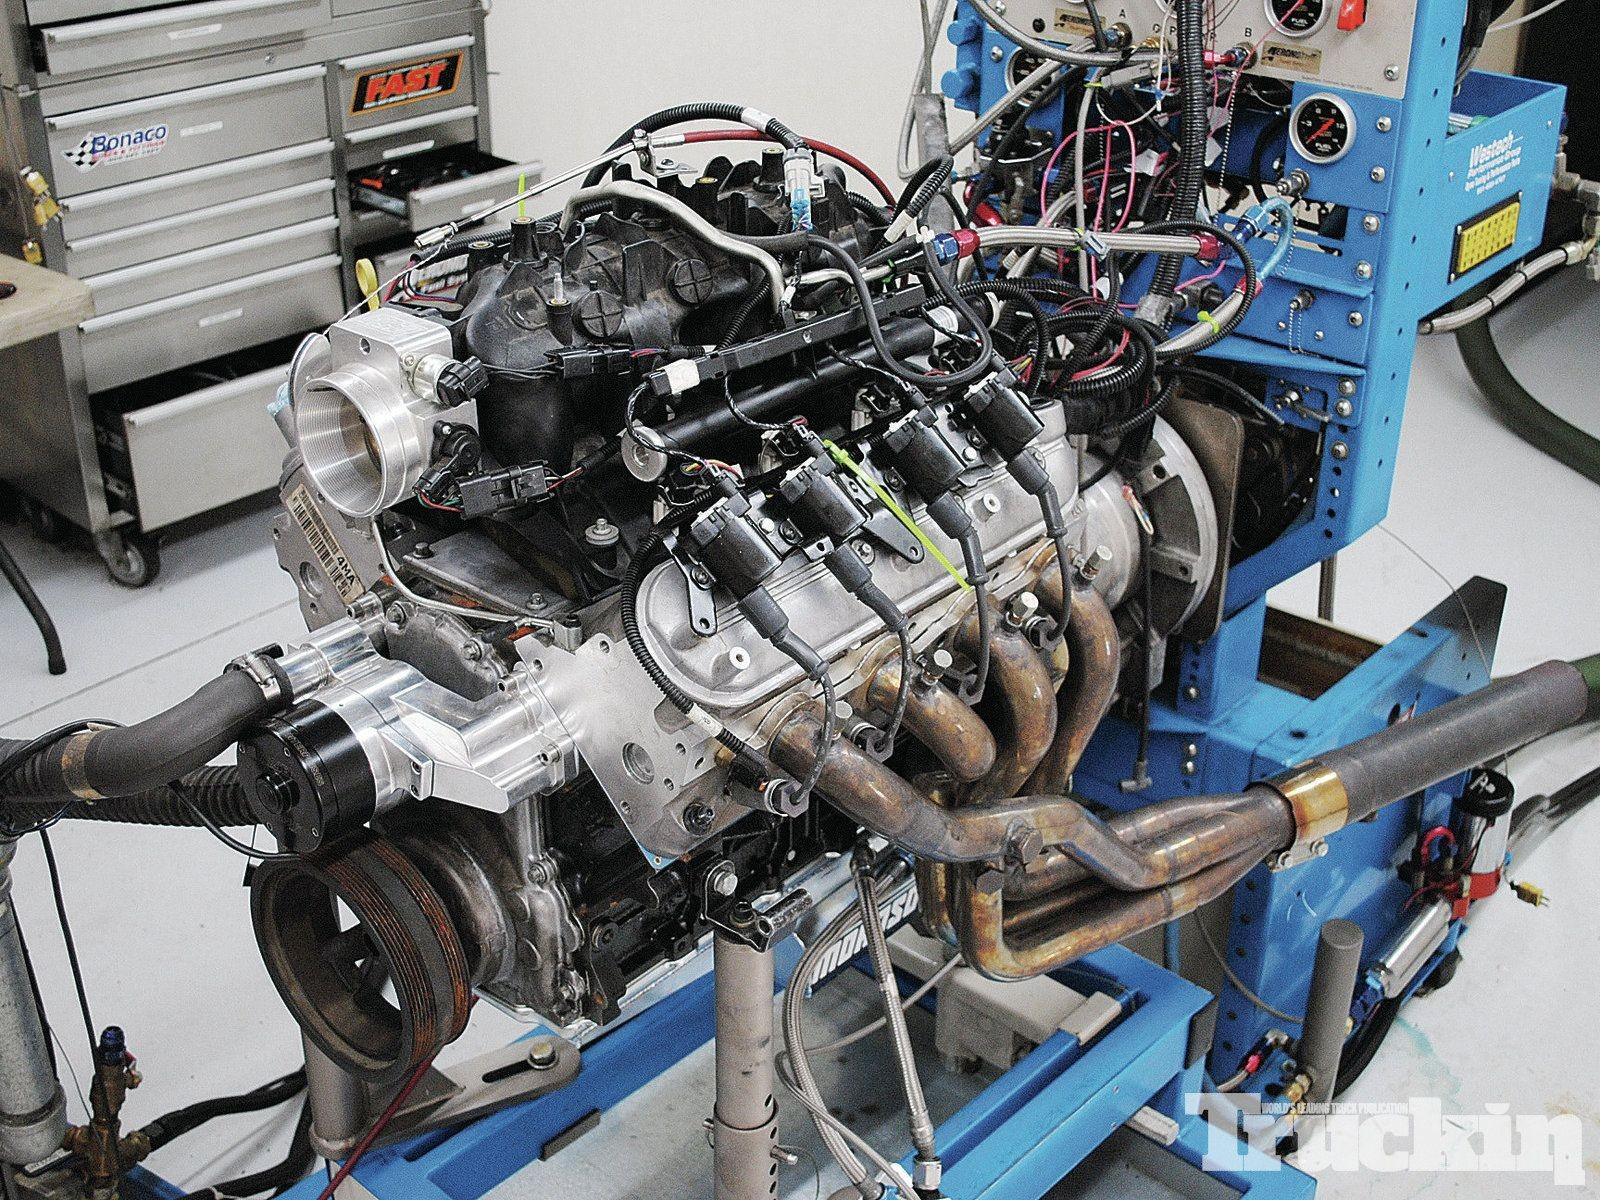 5 3 Vortec Engine Diagram Awesome Wiring Harness Chevy 3l Bow Tie Builds Mild To Wild Lm7 Engines